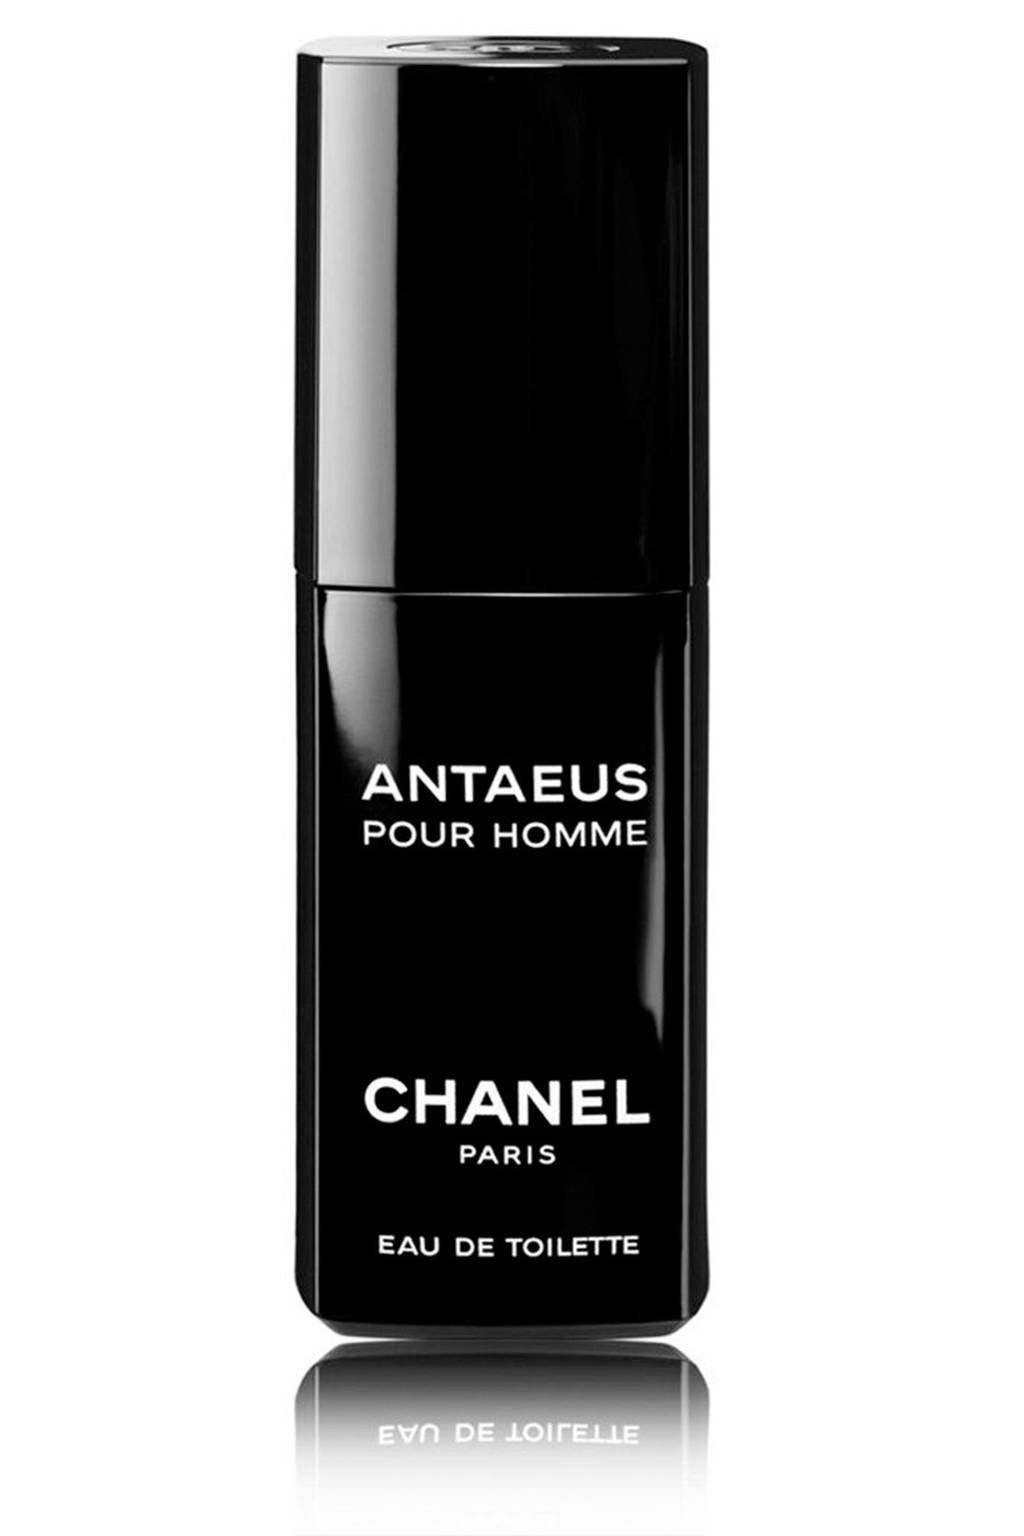 Chanel Antaeus eau de toilette - 100 ml